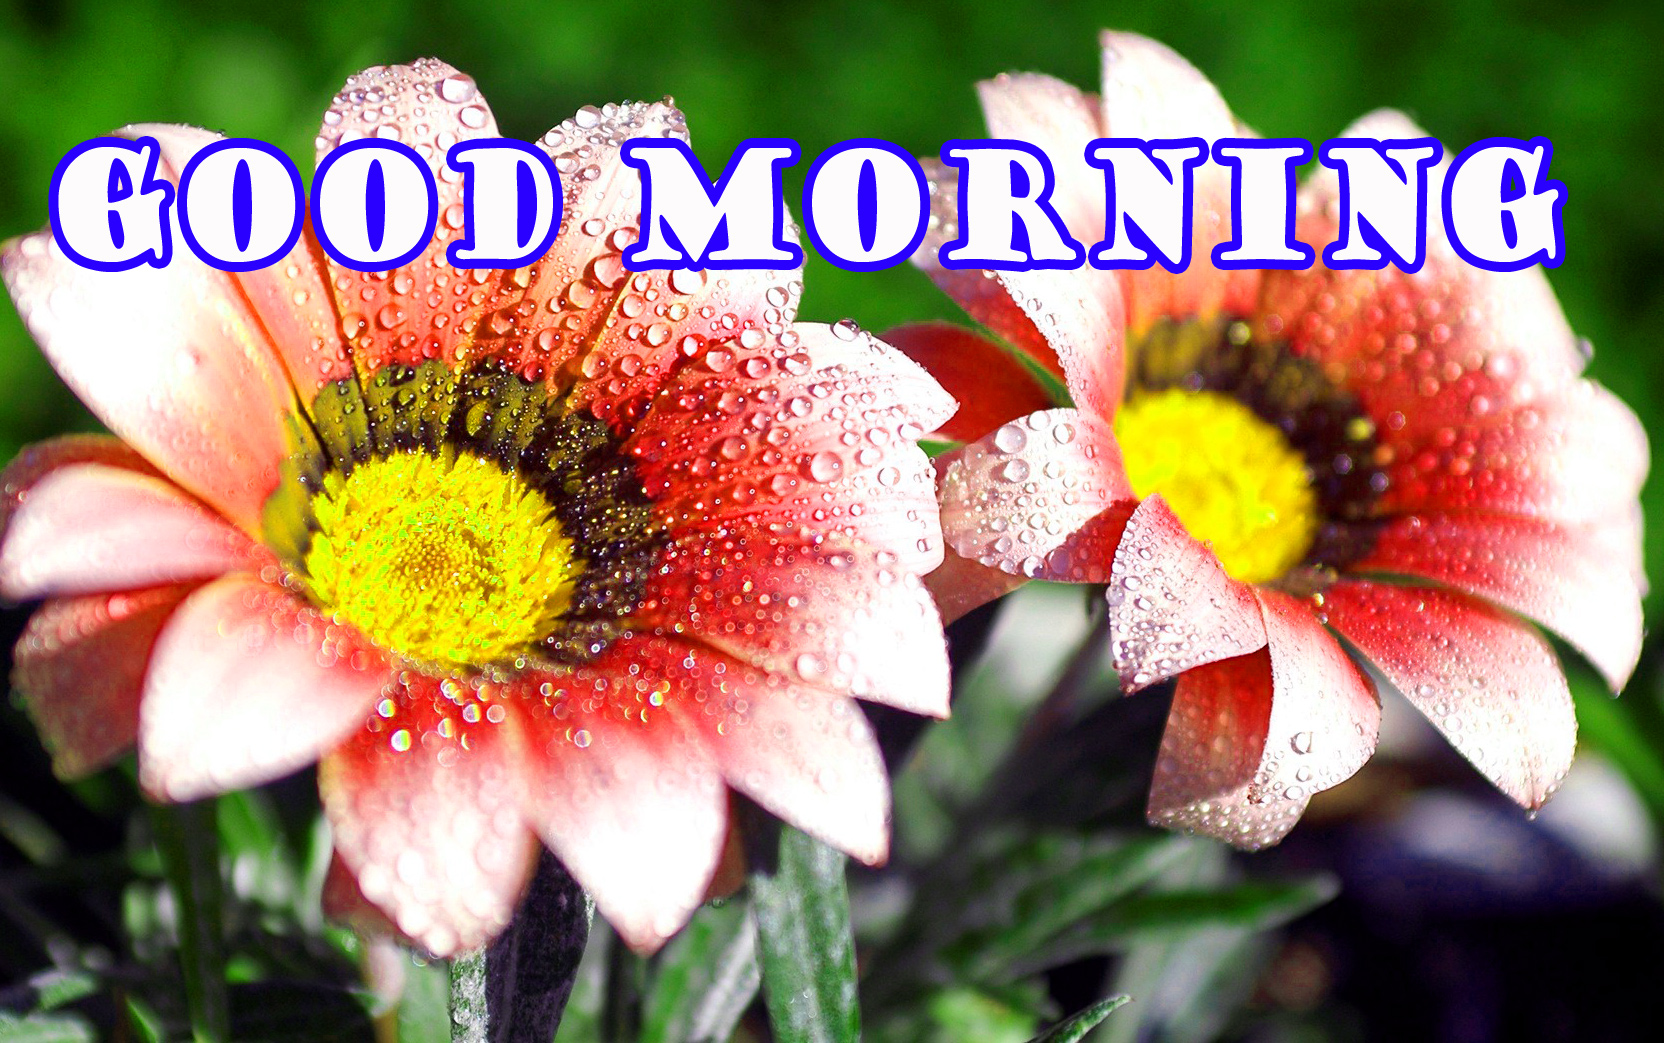 Good Morning Flowers Wallpaper Images Photo HD